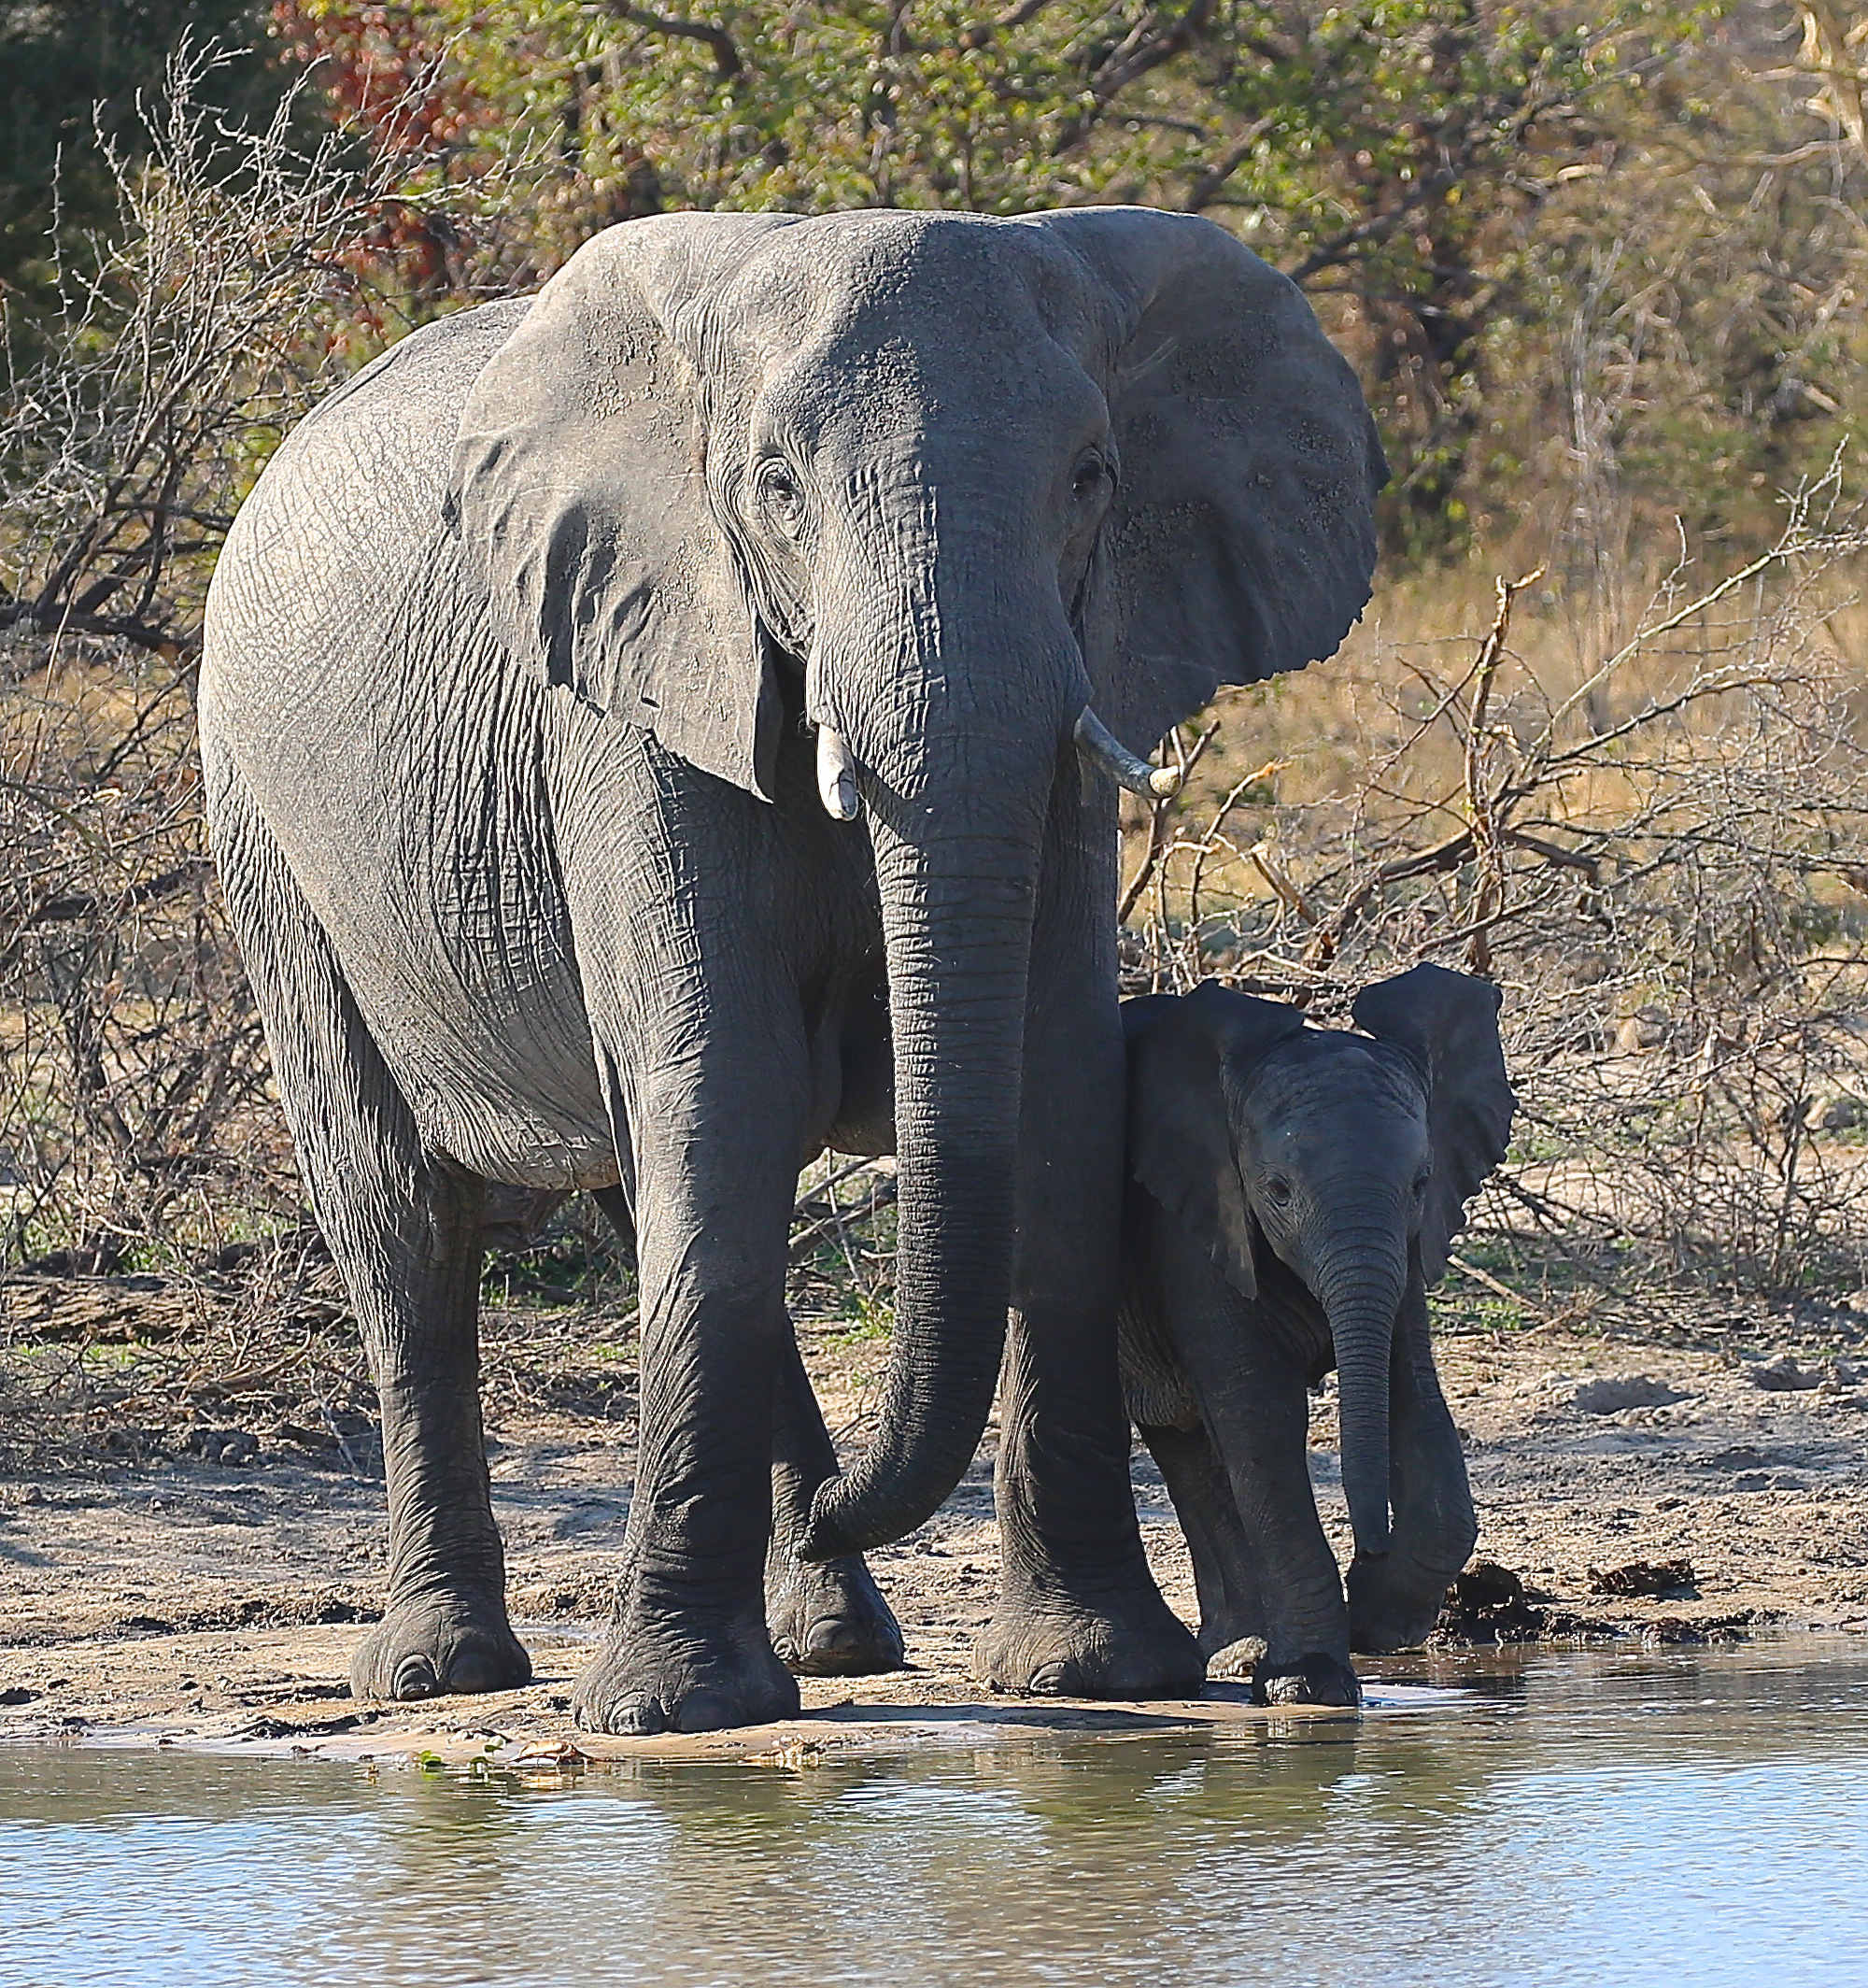 An adult African elephant and her calf at the waters edge